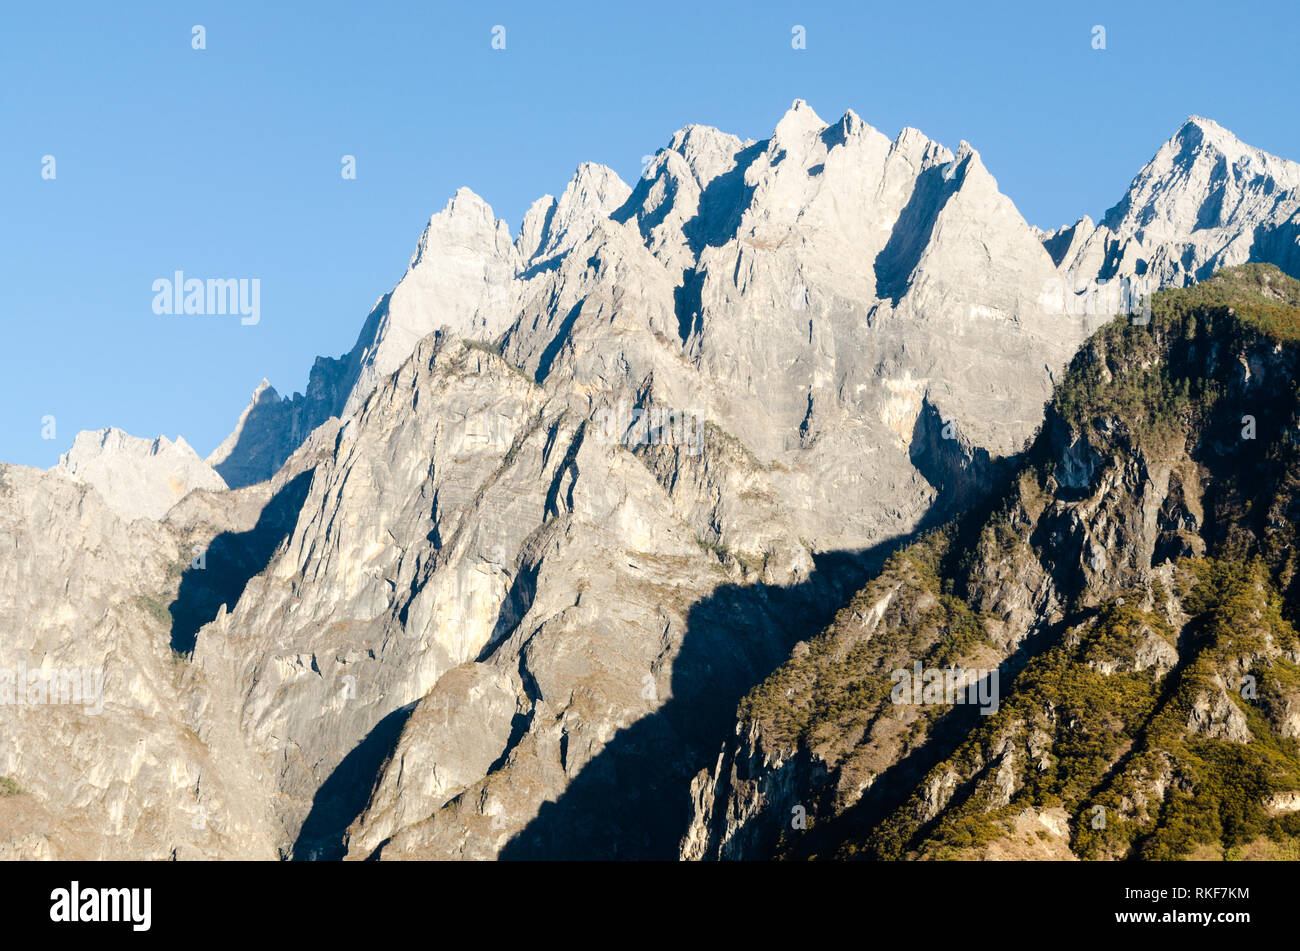 The jagged mountain peaks of Tiger Leaping Gorge, Yunnan, China - Stock Image